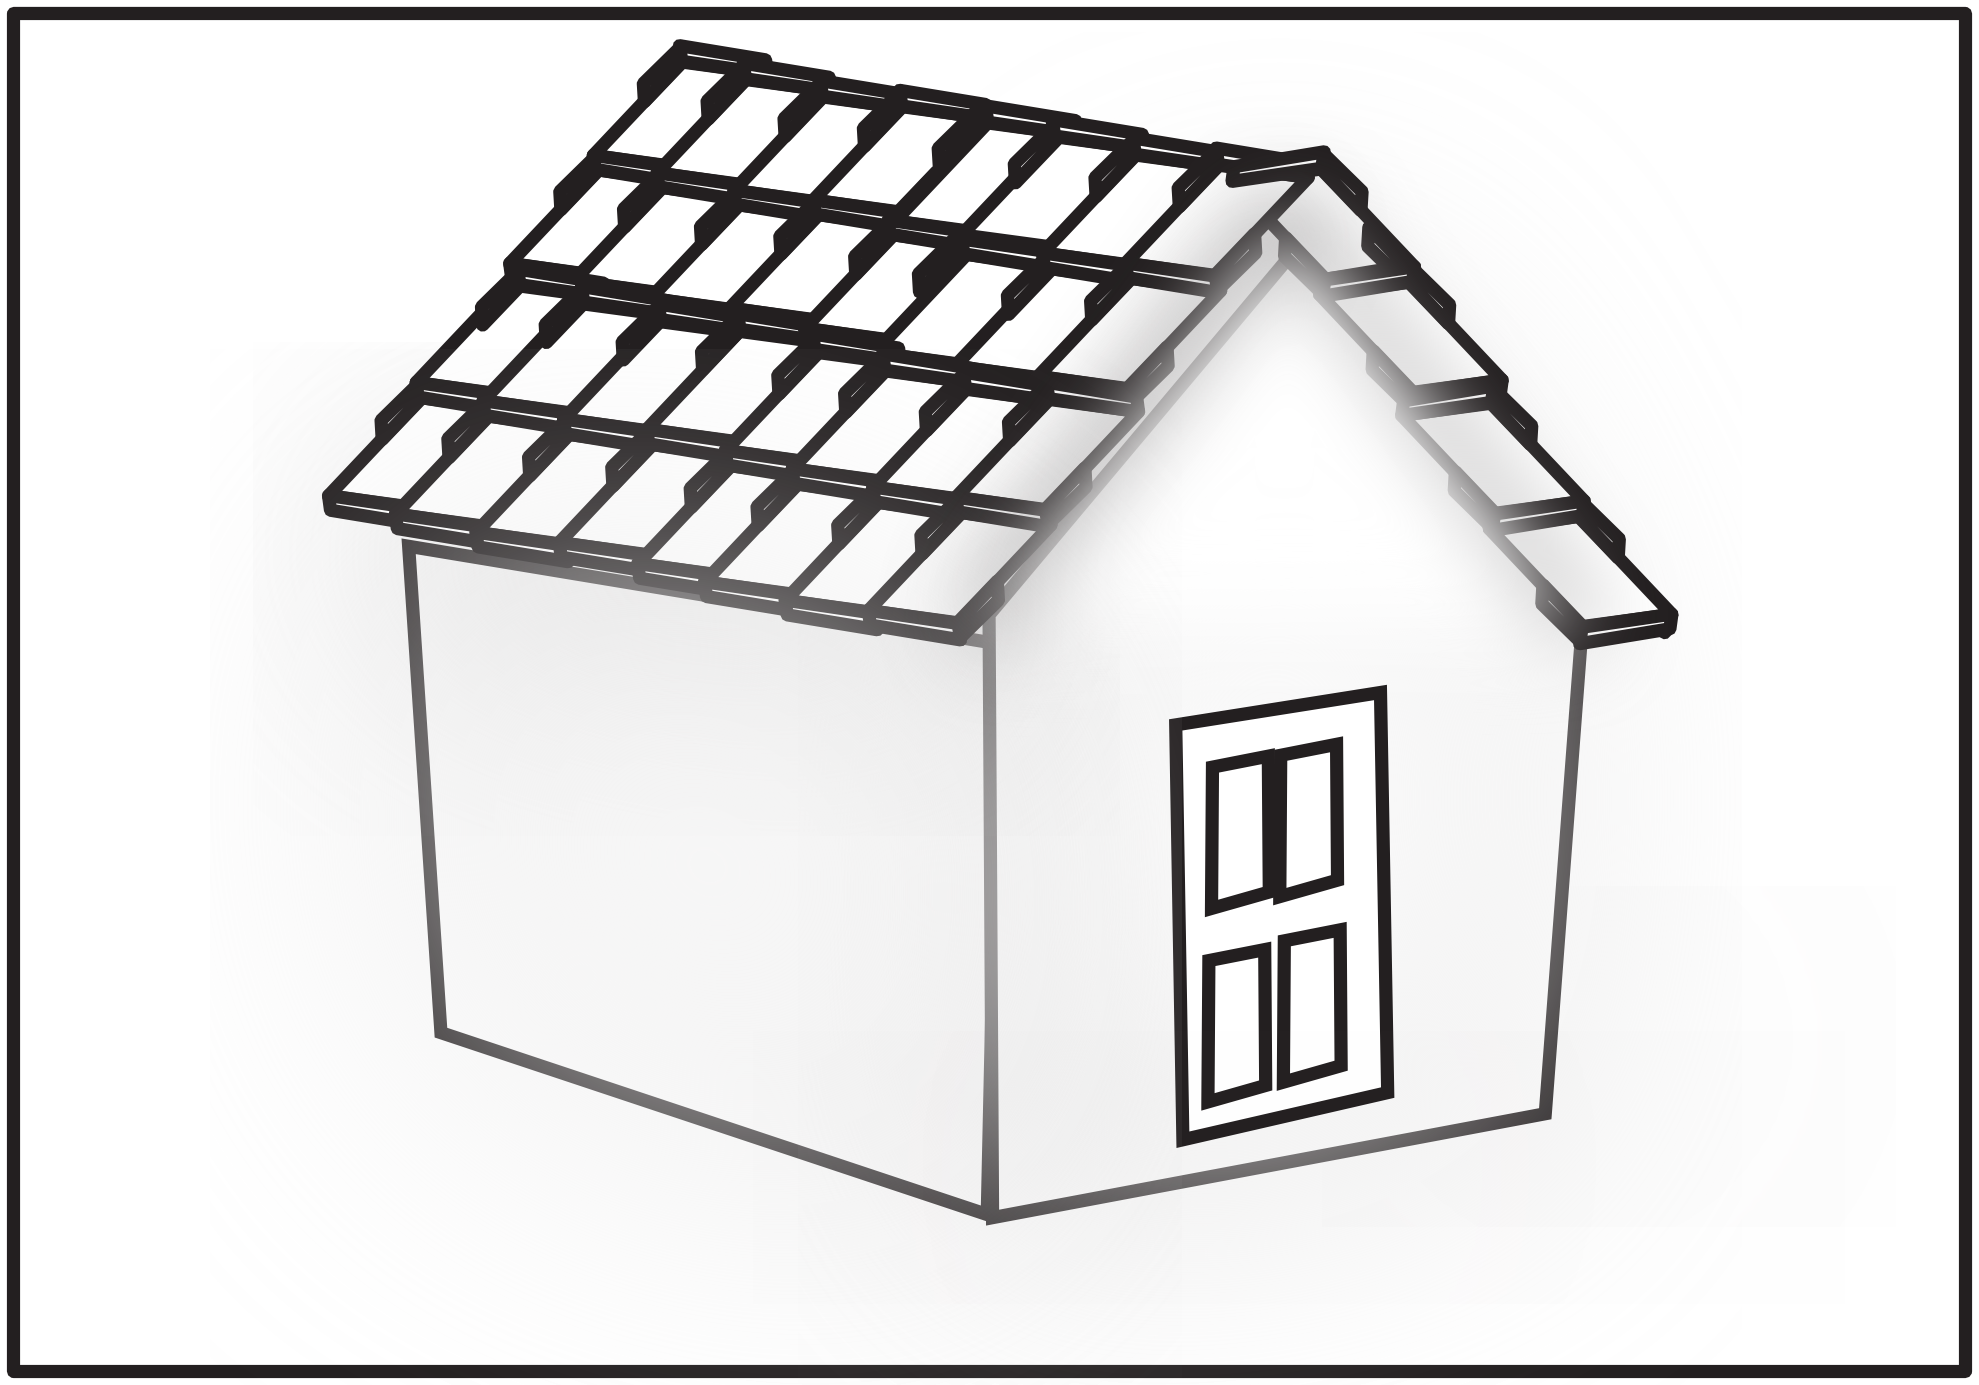 1979x1385 Roof Clipart Black And White